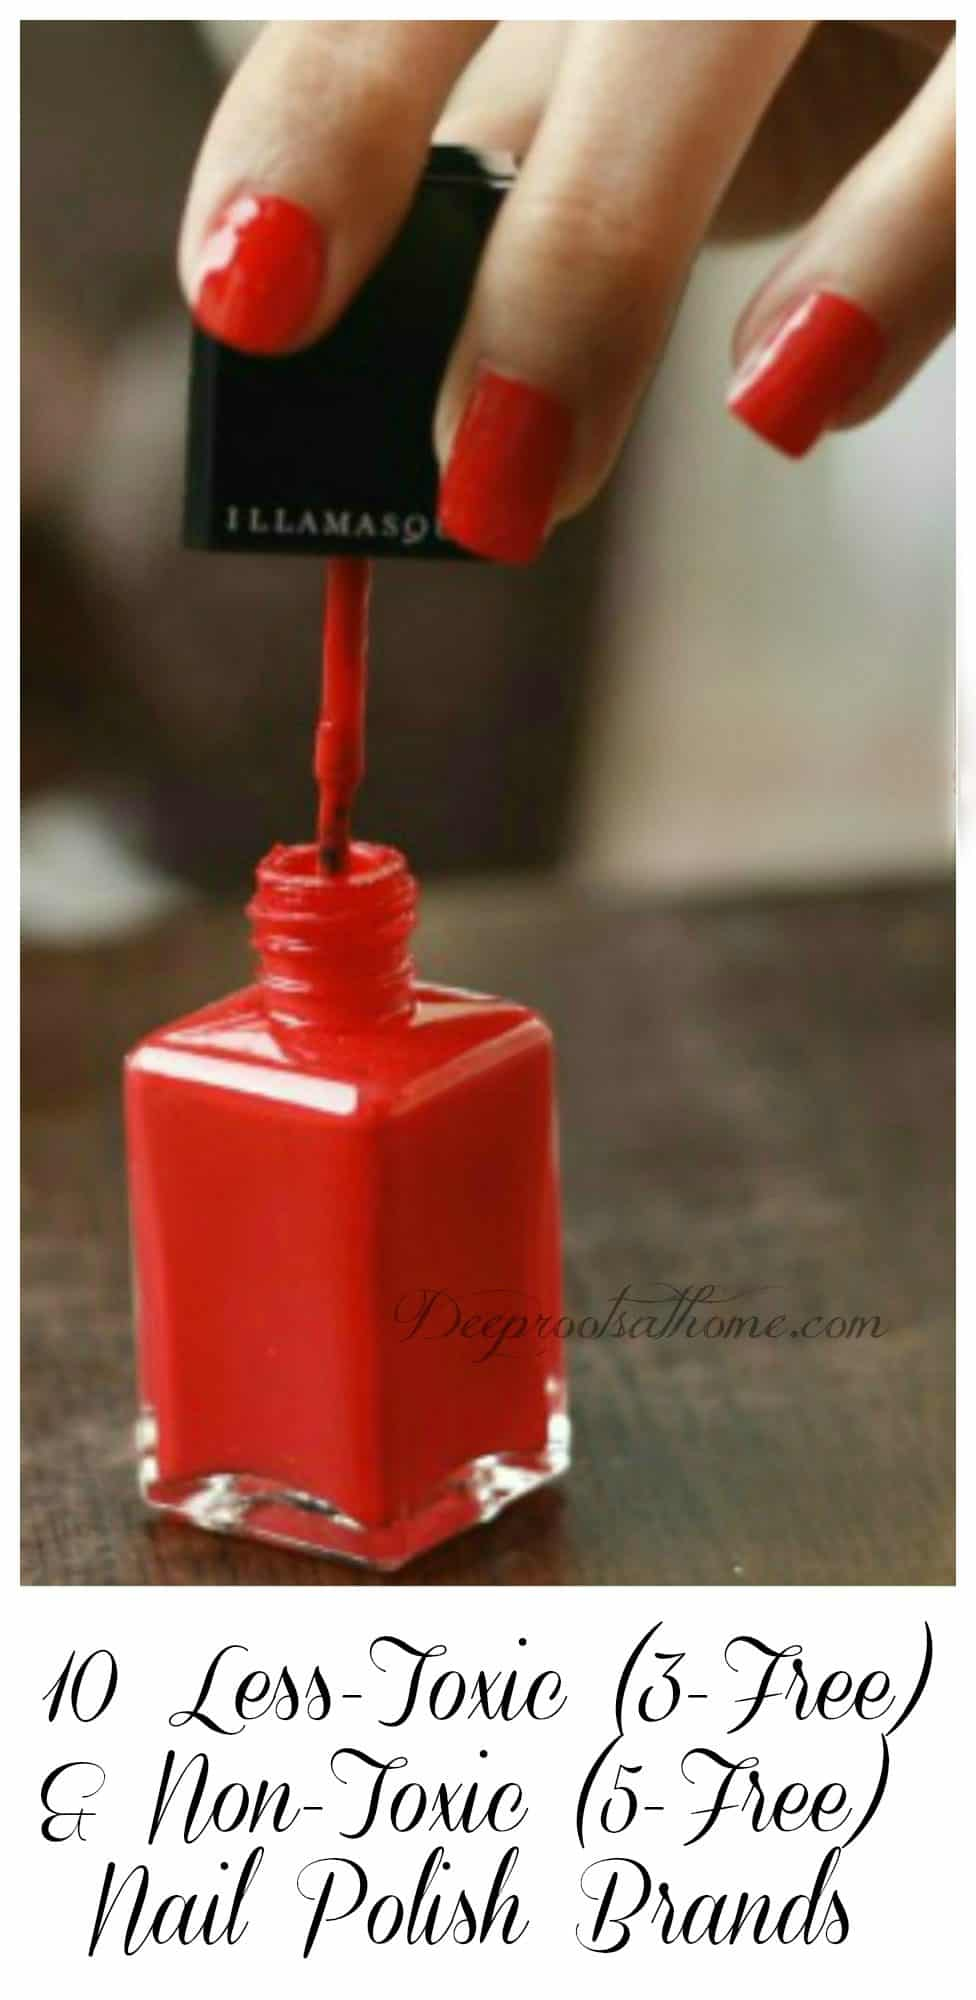 9 Less-Toxic & Non-Toxic Nail Polish Brands. Woman opening a brilliant red nail polish .